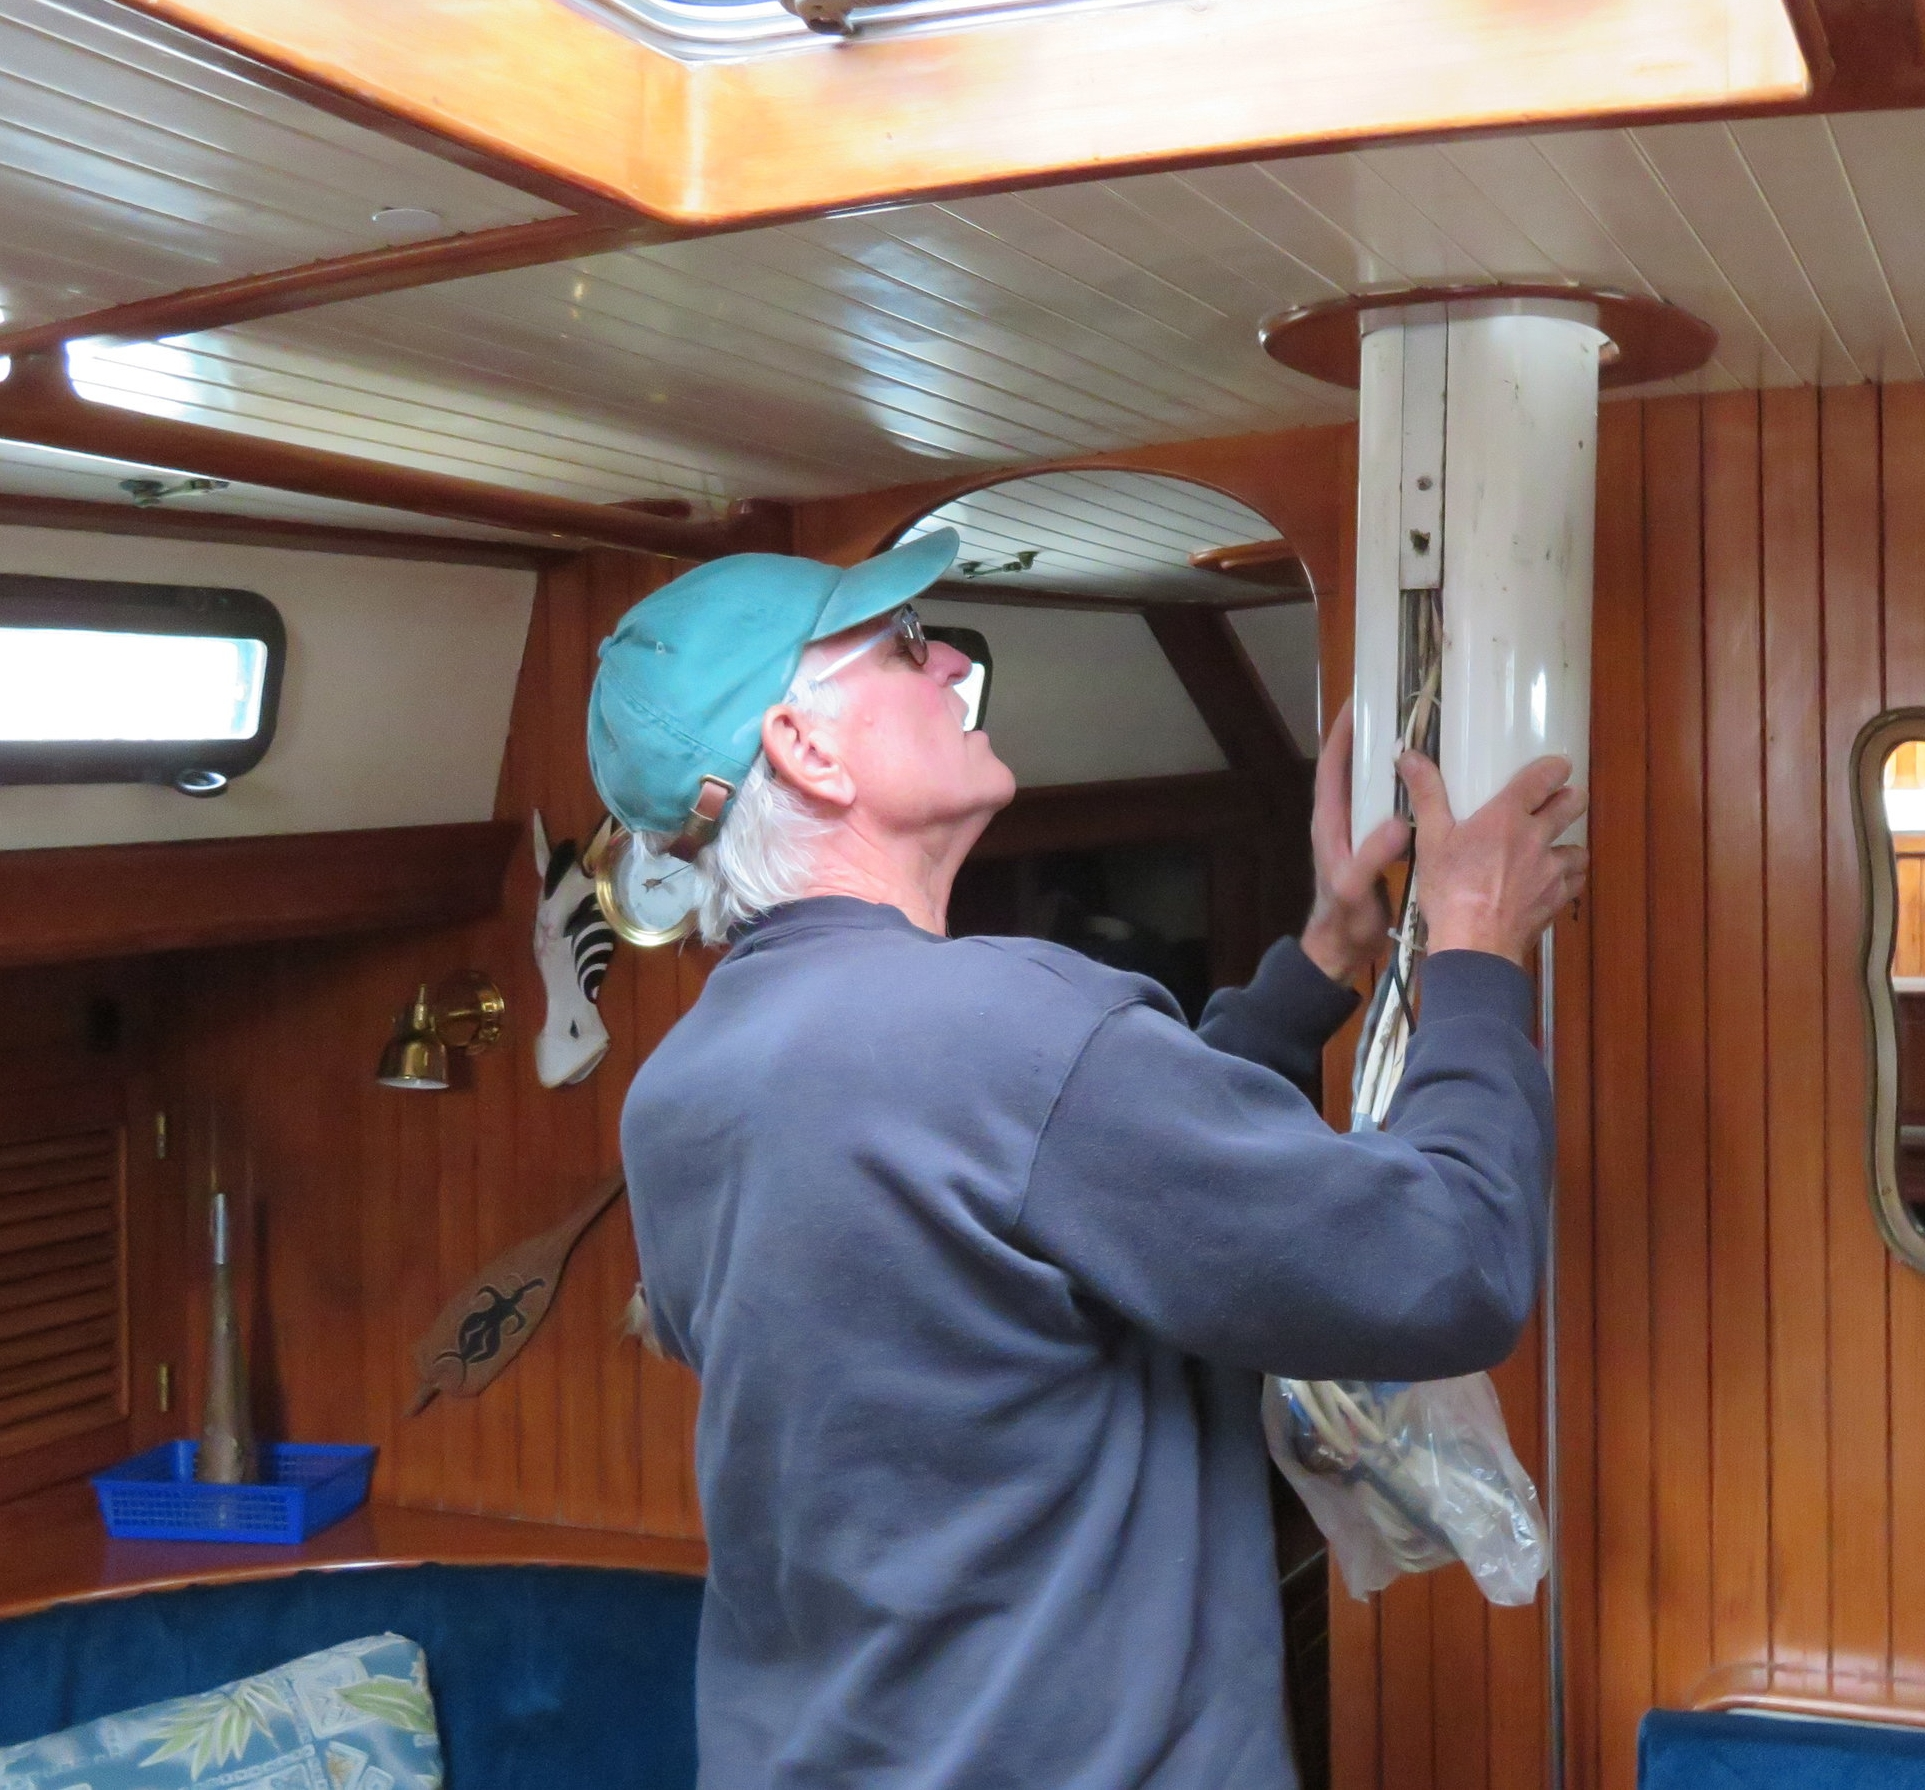 Guiding the base of the mast up and out